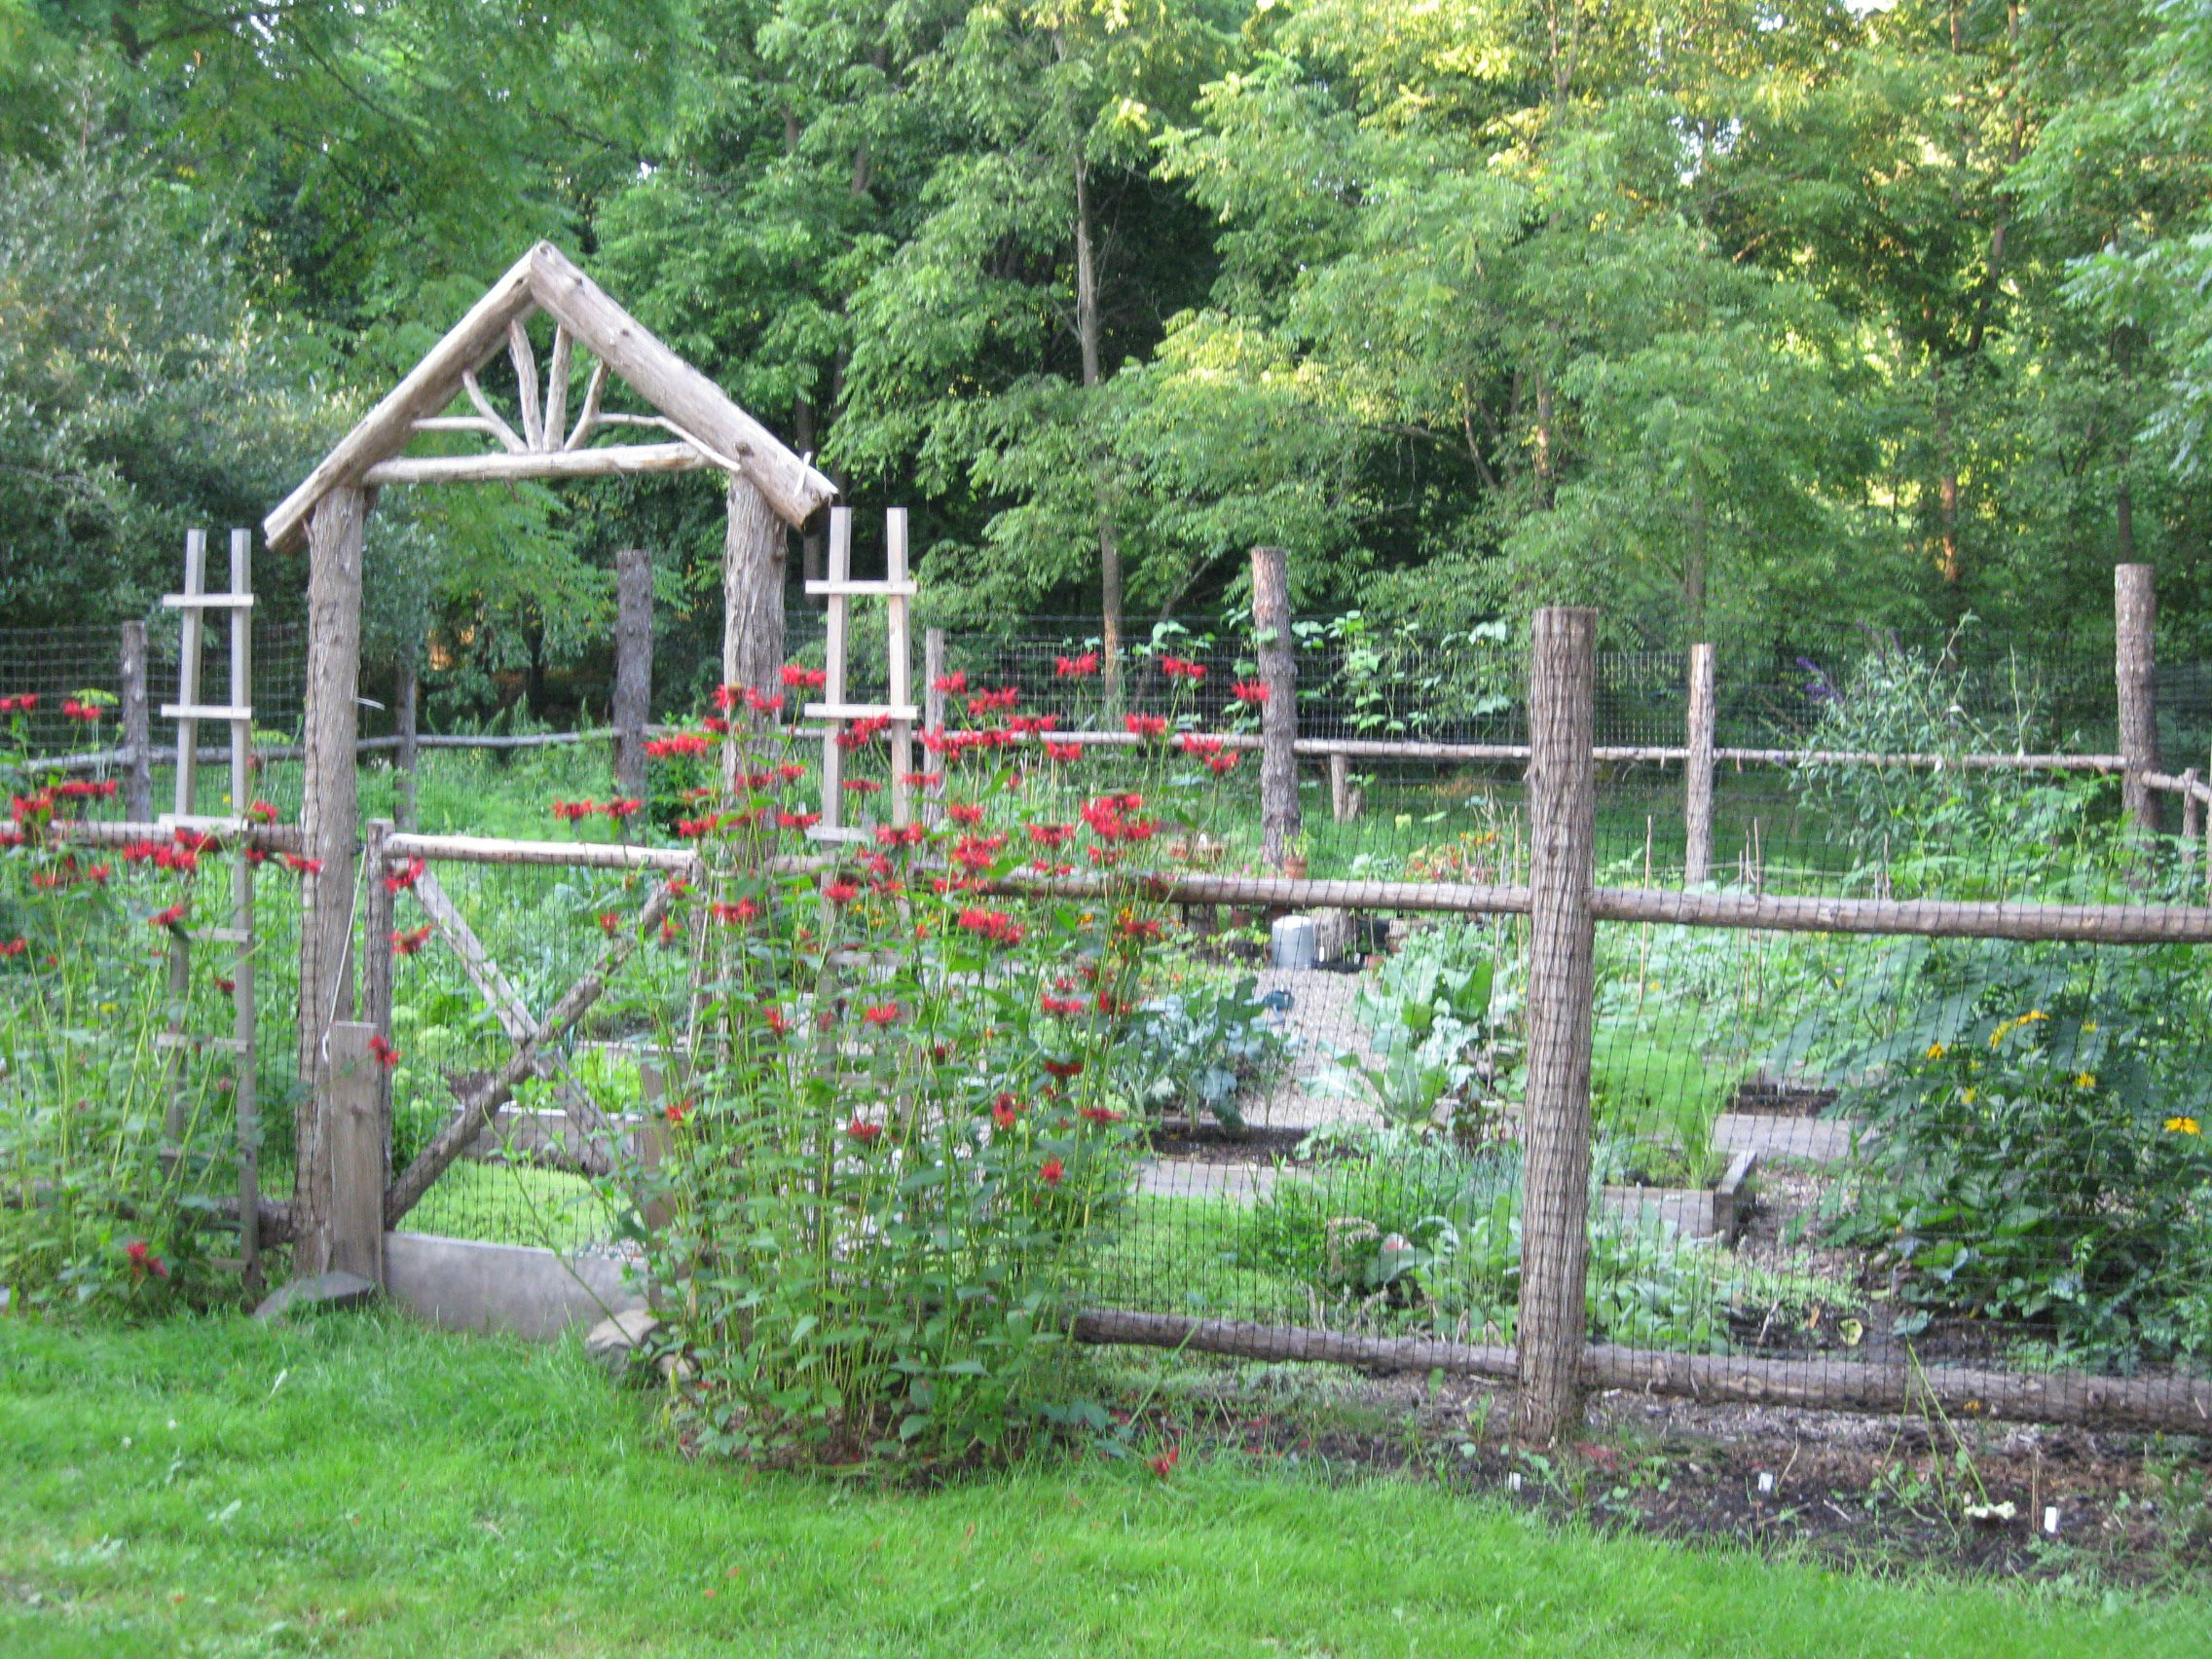 Backyard food garden ideas - So You Can Make The Fence By Your Own It Will Be Cheaper Determine The Vegetable Garden Fence Design That You Like